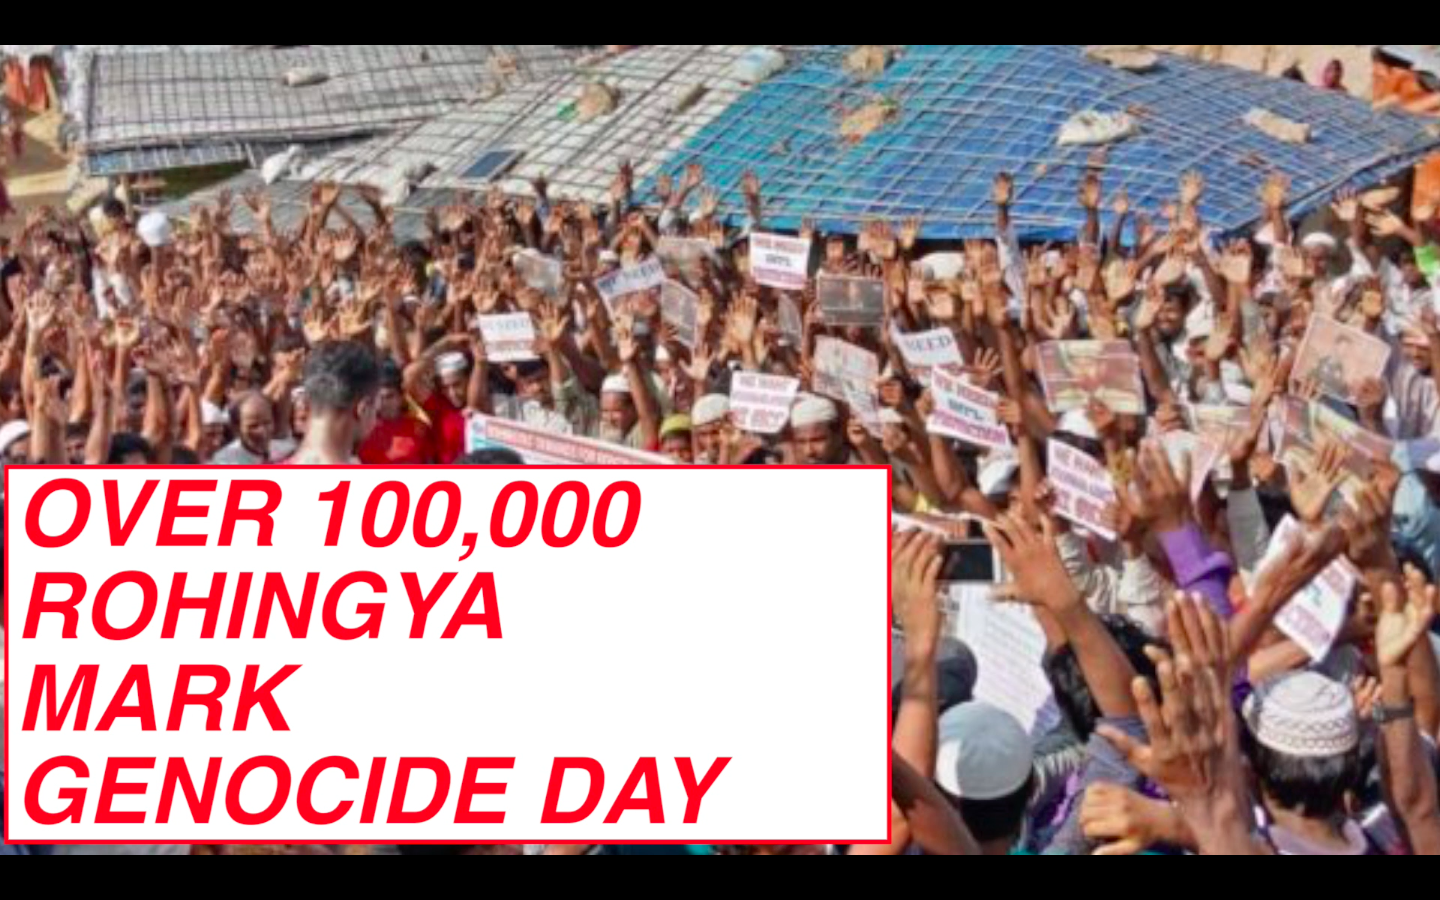 genocide day rohingya